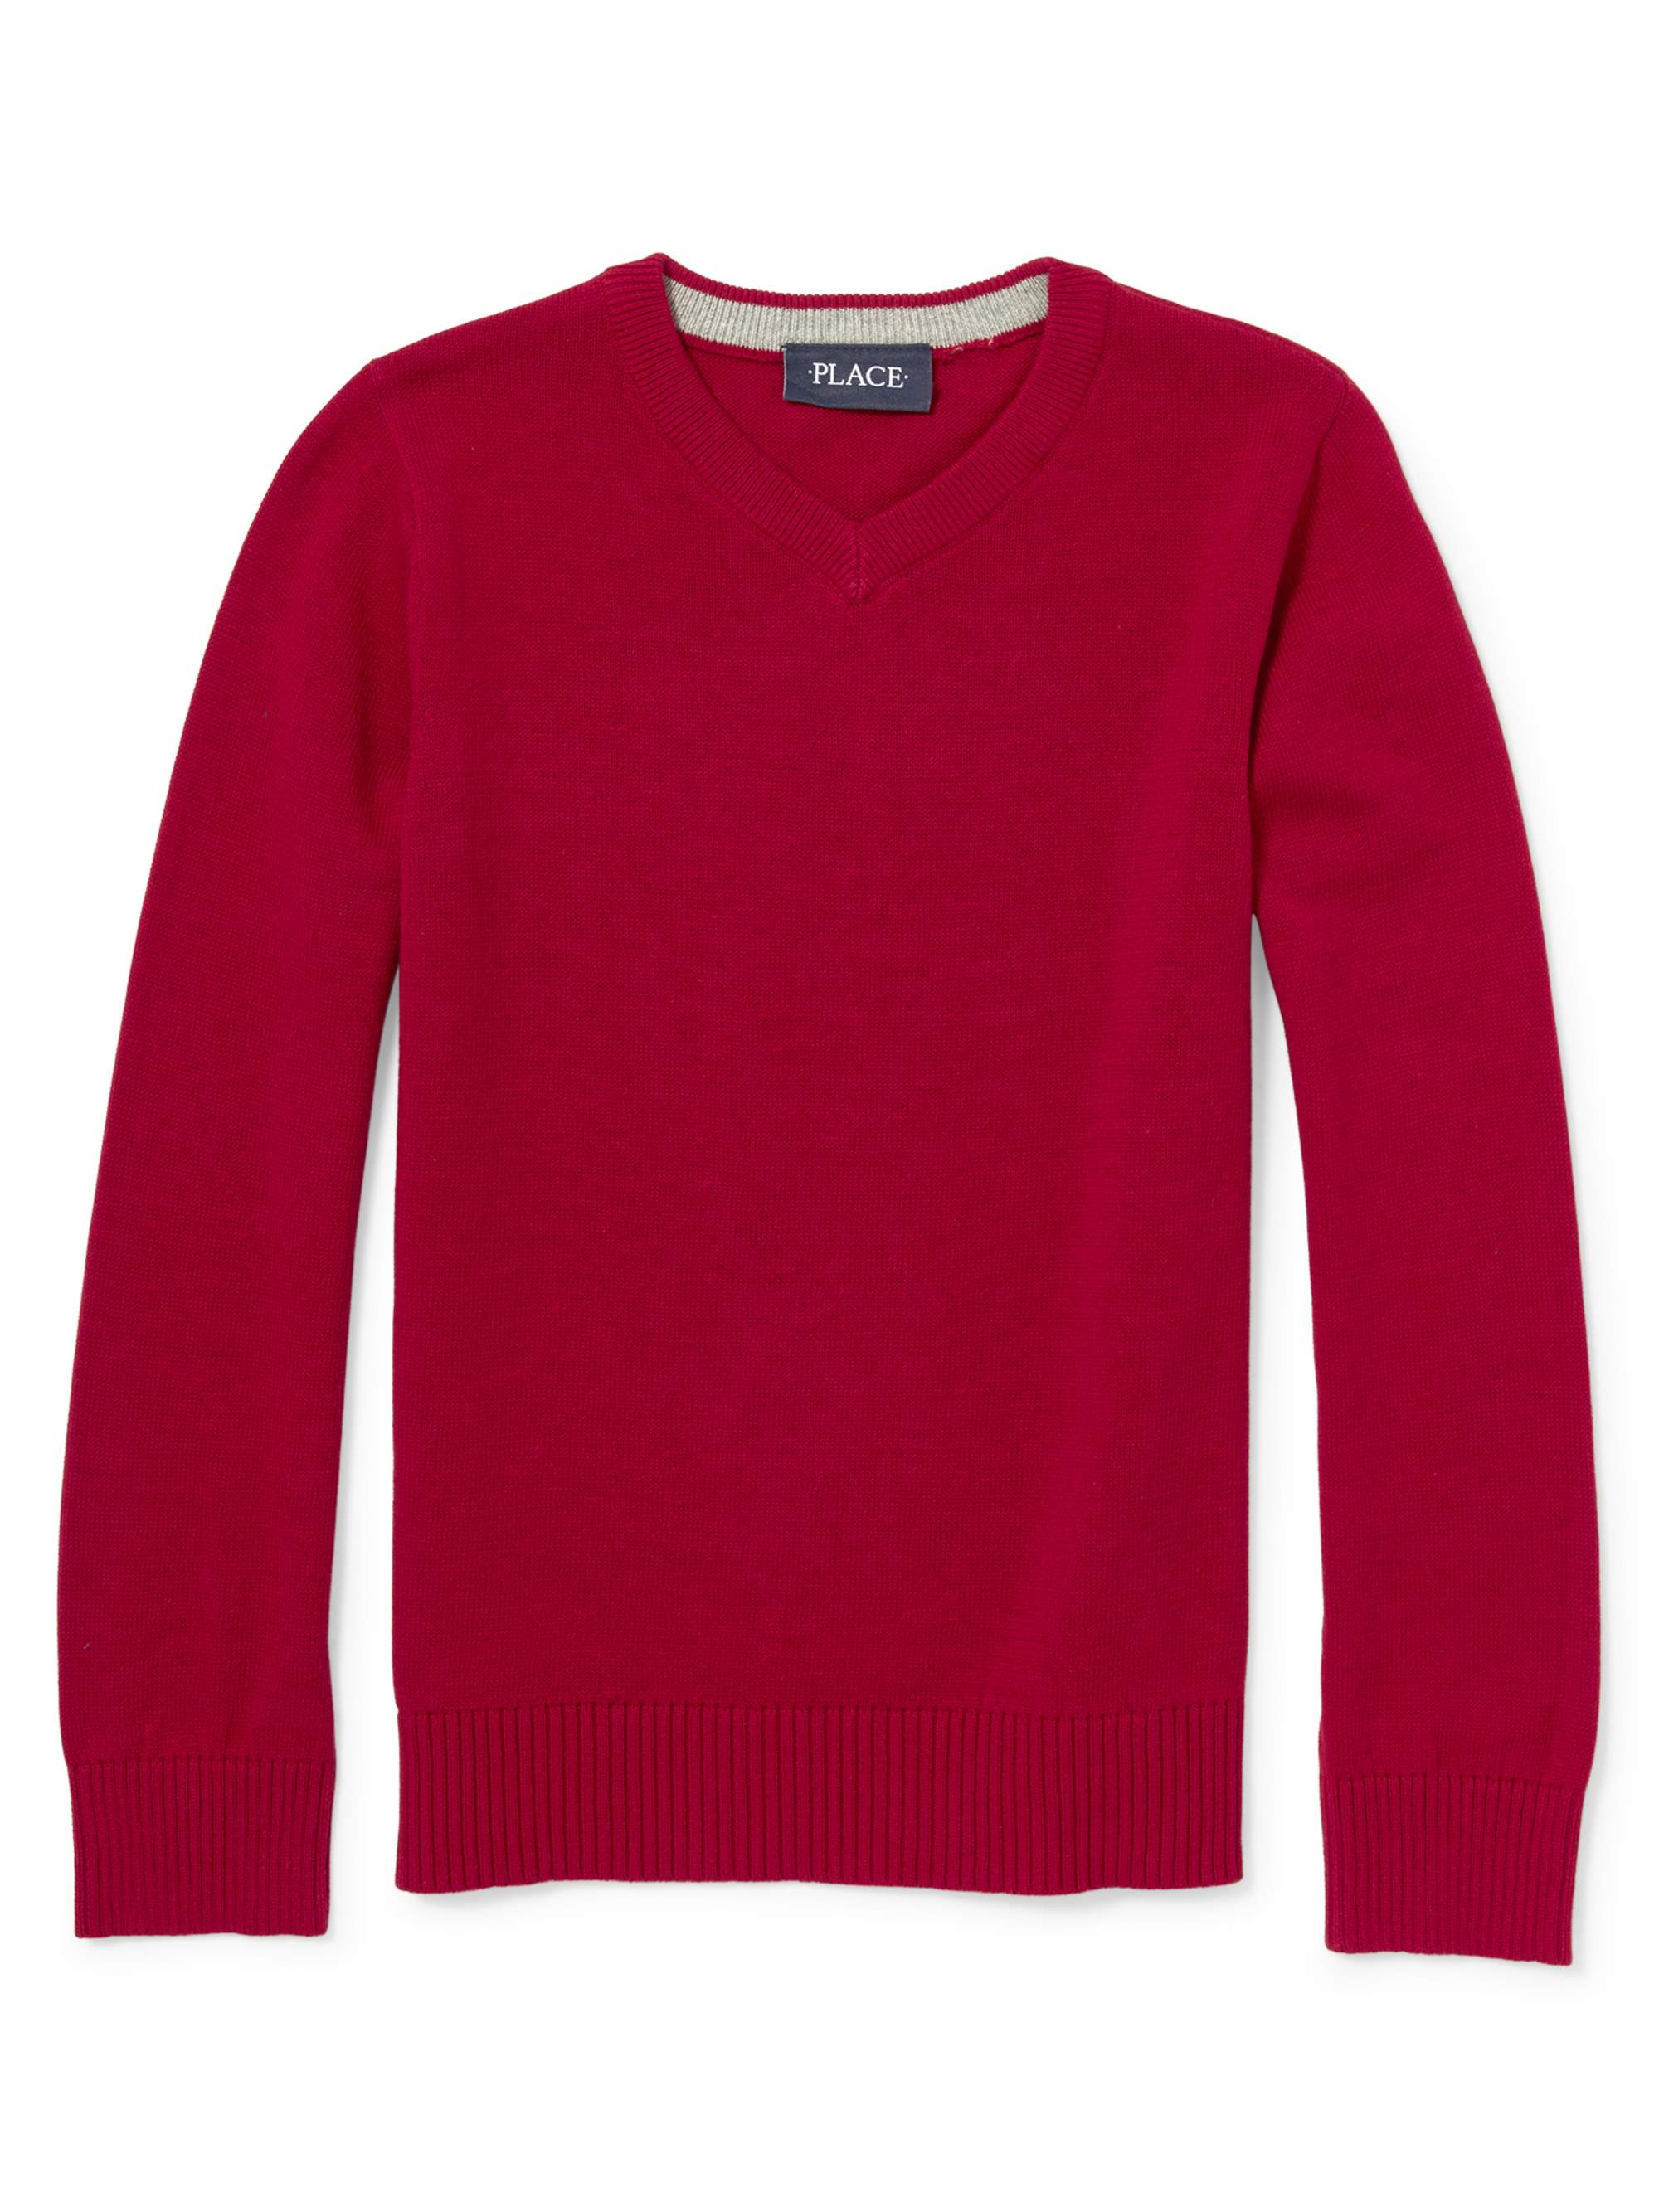 Pull Over Vneck Sweater (Little Boy & Big Boy)